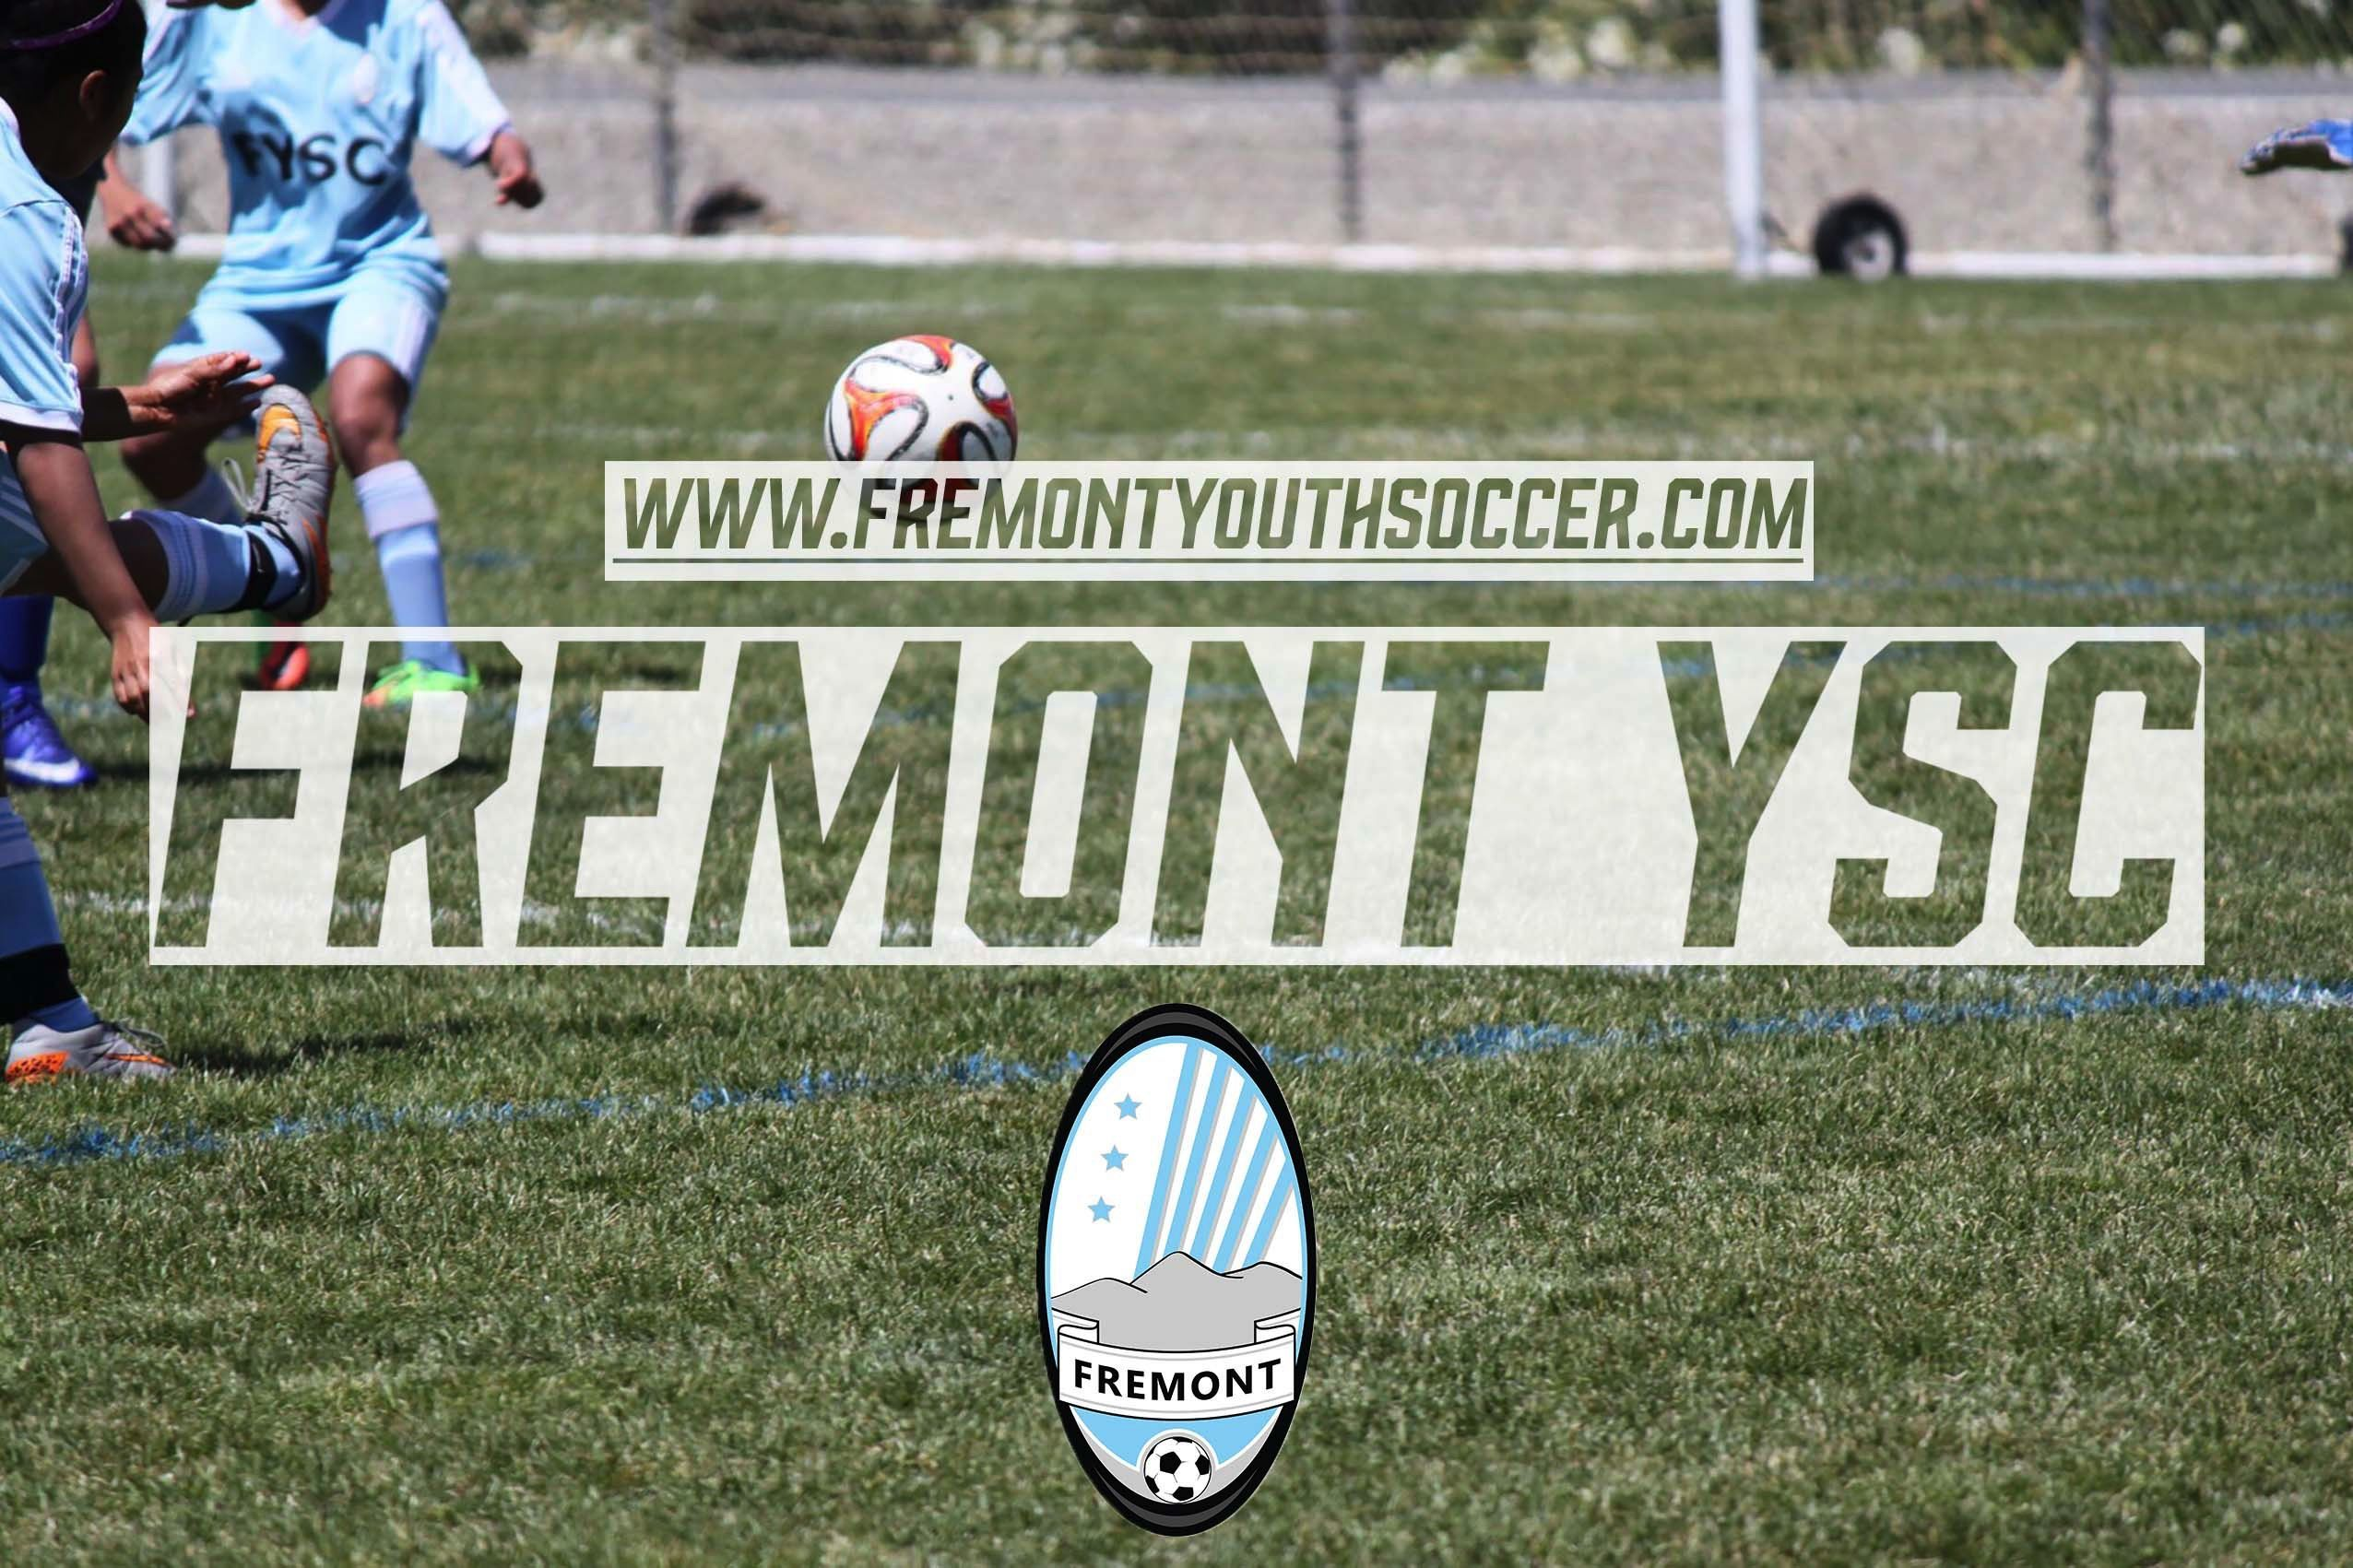 cff609b27 Fremont Youth Soccer Club Schedule   Reviews